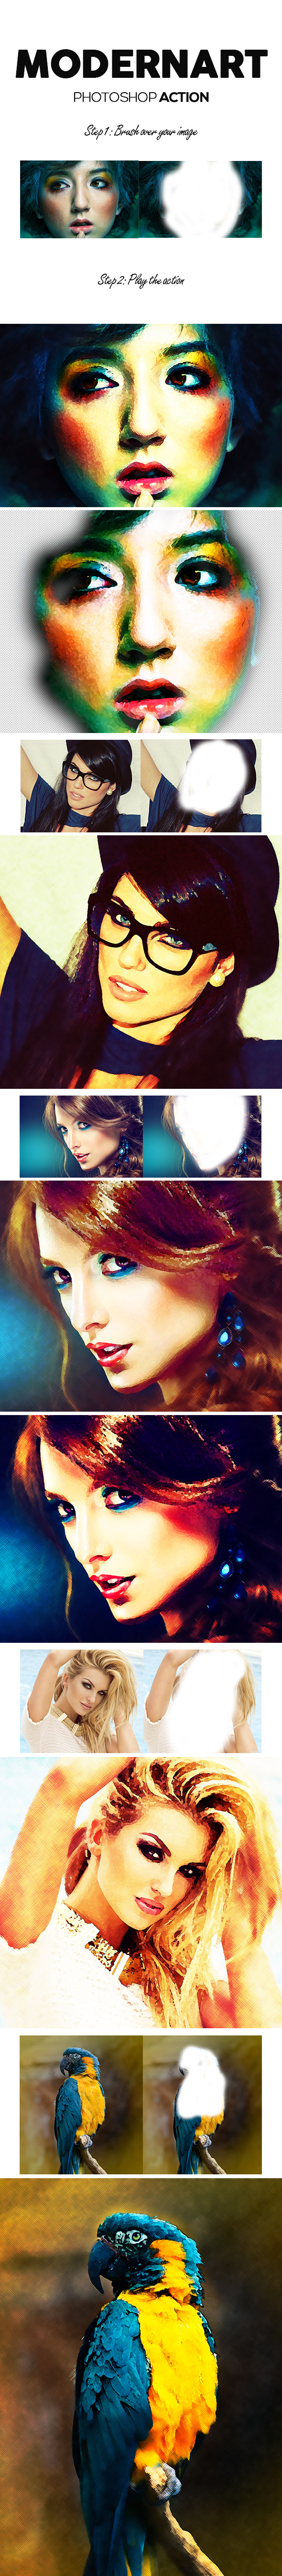 ModernArt Photoshop Action - Photo Effects Actions